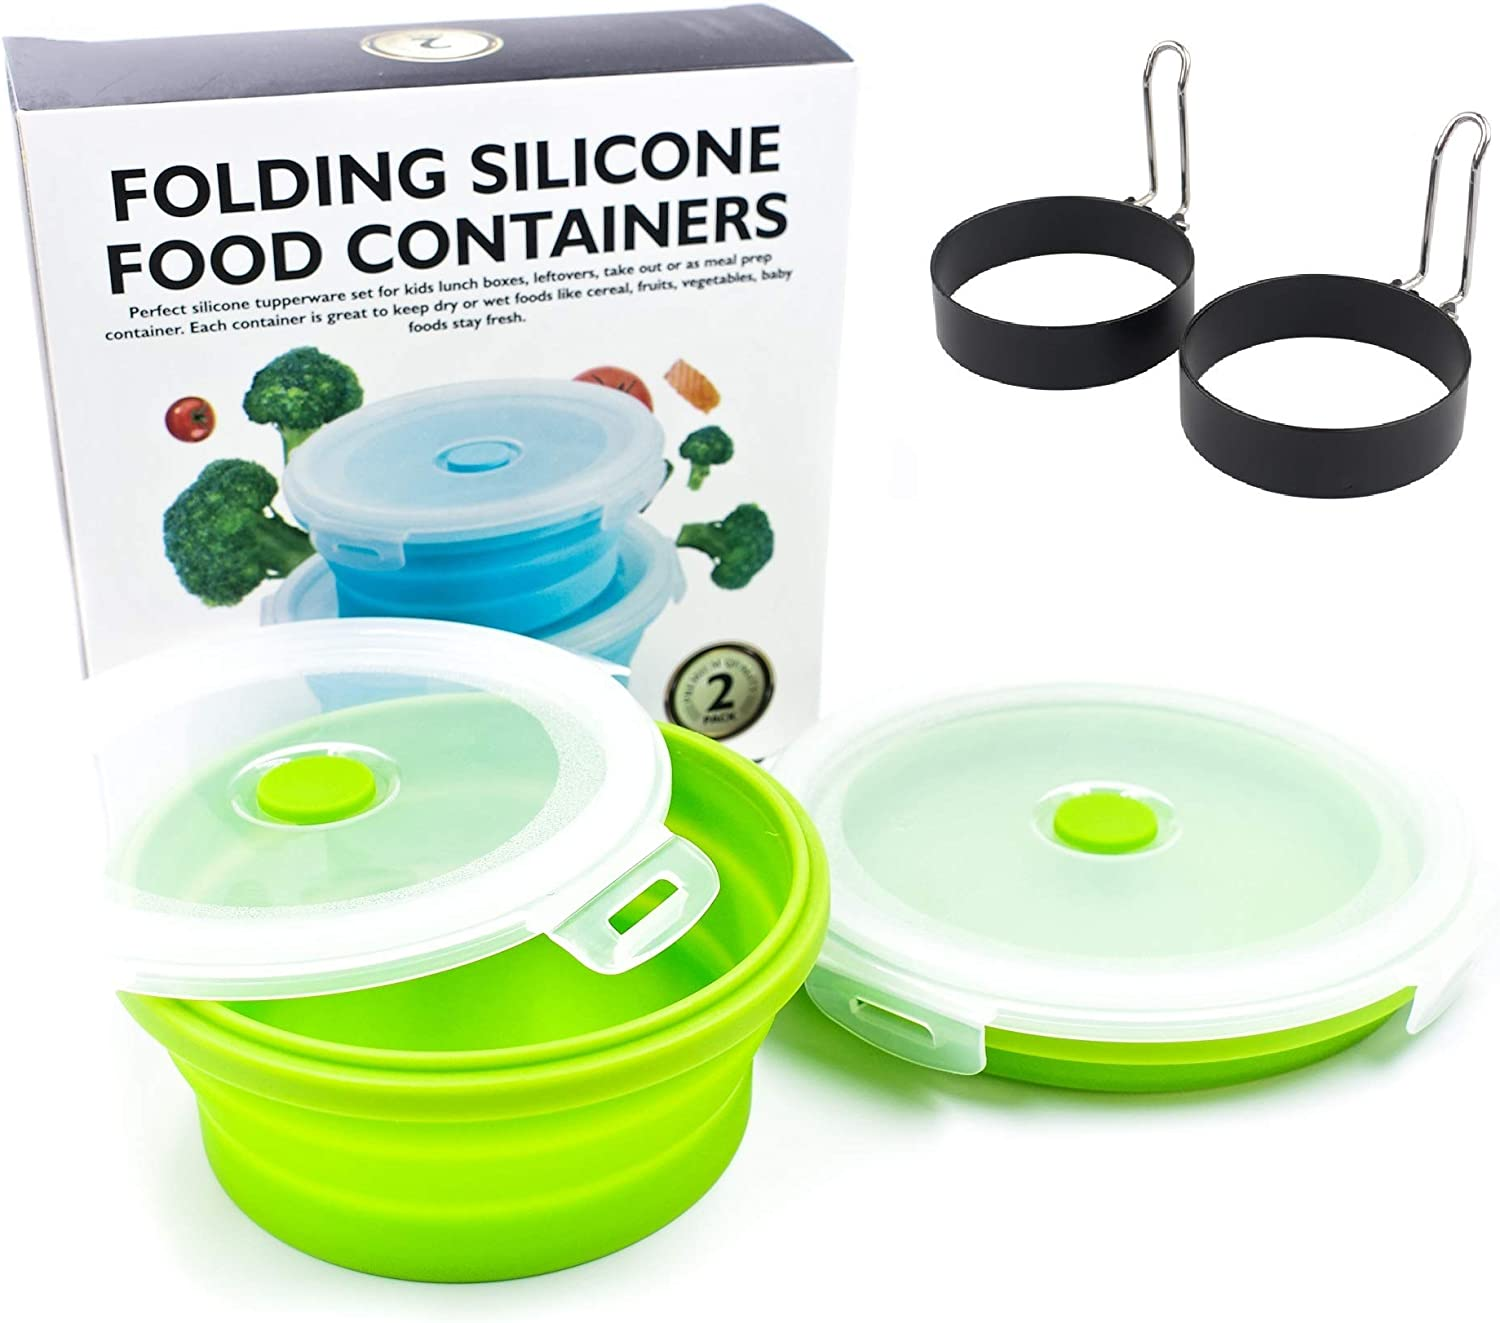 Thin Bins Collapsible Containers 2 Pieces Egg Ring & 2 Pieces Round Silicone Food Storage Containers – BPA Free, Microwave, Dishwasher and Freezer Safe (Green)